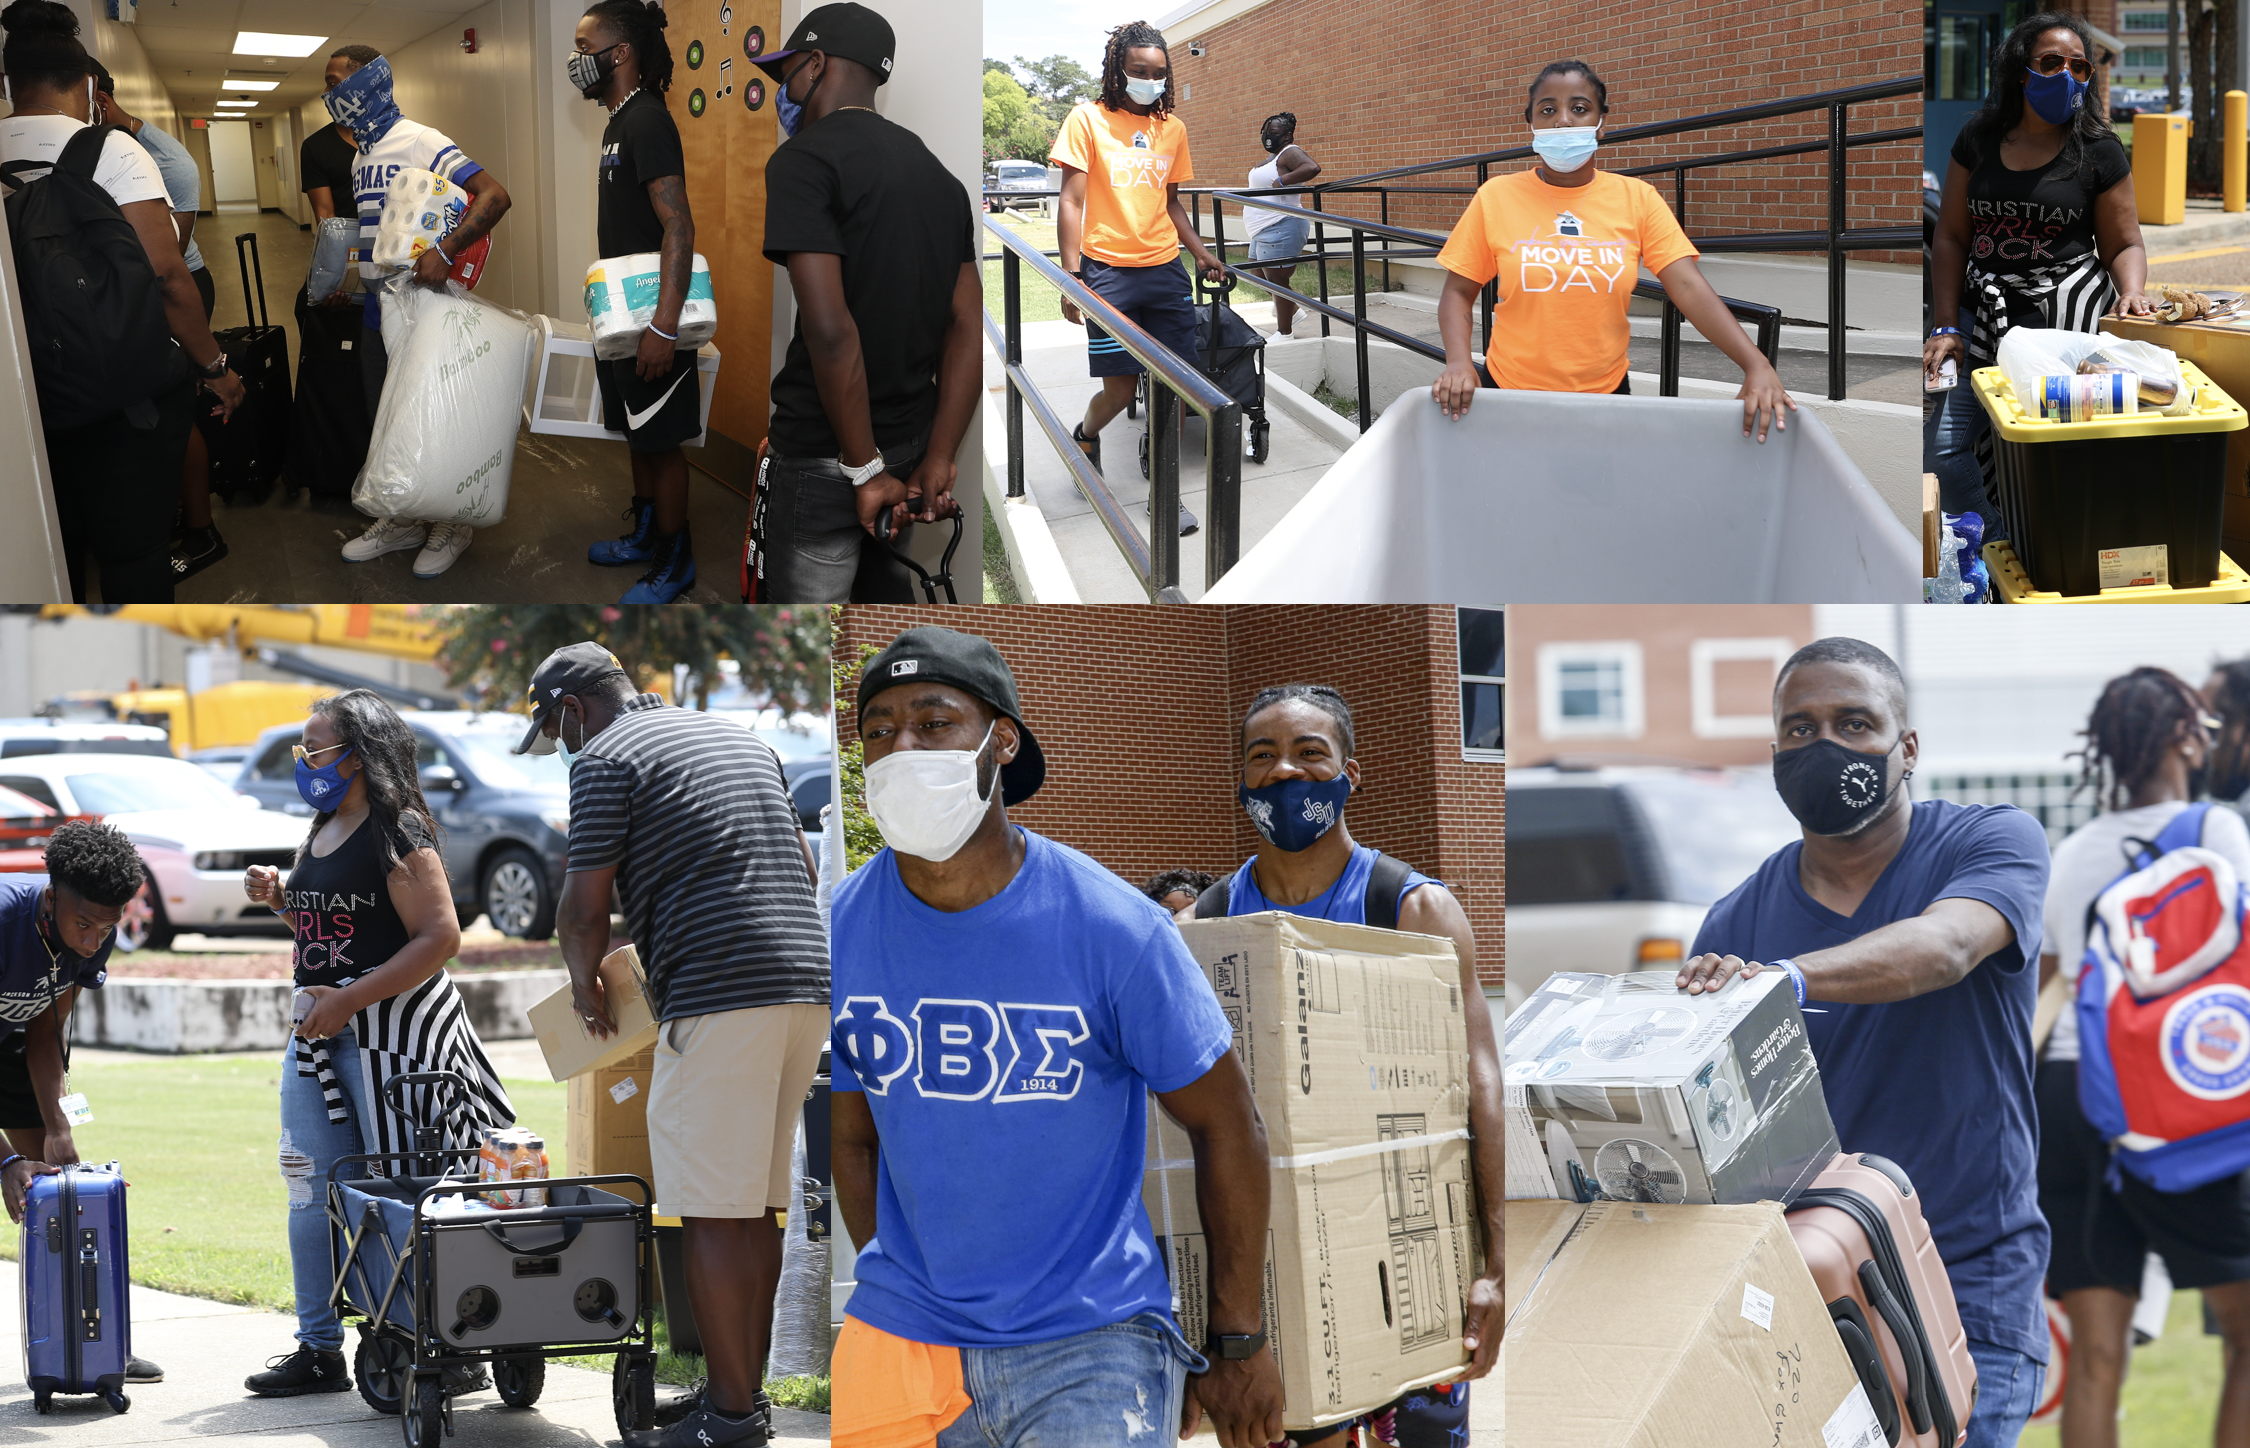 JSU's 2021 Move-in Day was a huge success. Student volunteers, new incoming students, parents and university staff worked collaboratively to ensure the process was smooth and safe for everyone. (Photos by Aaron Smith/JSU)